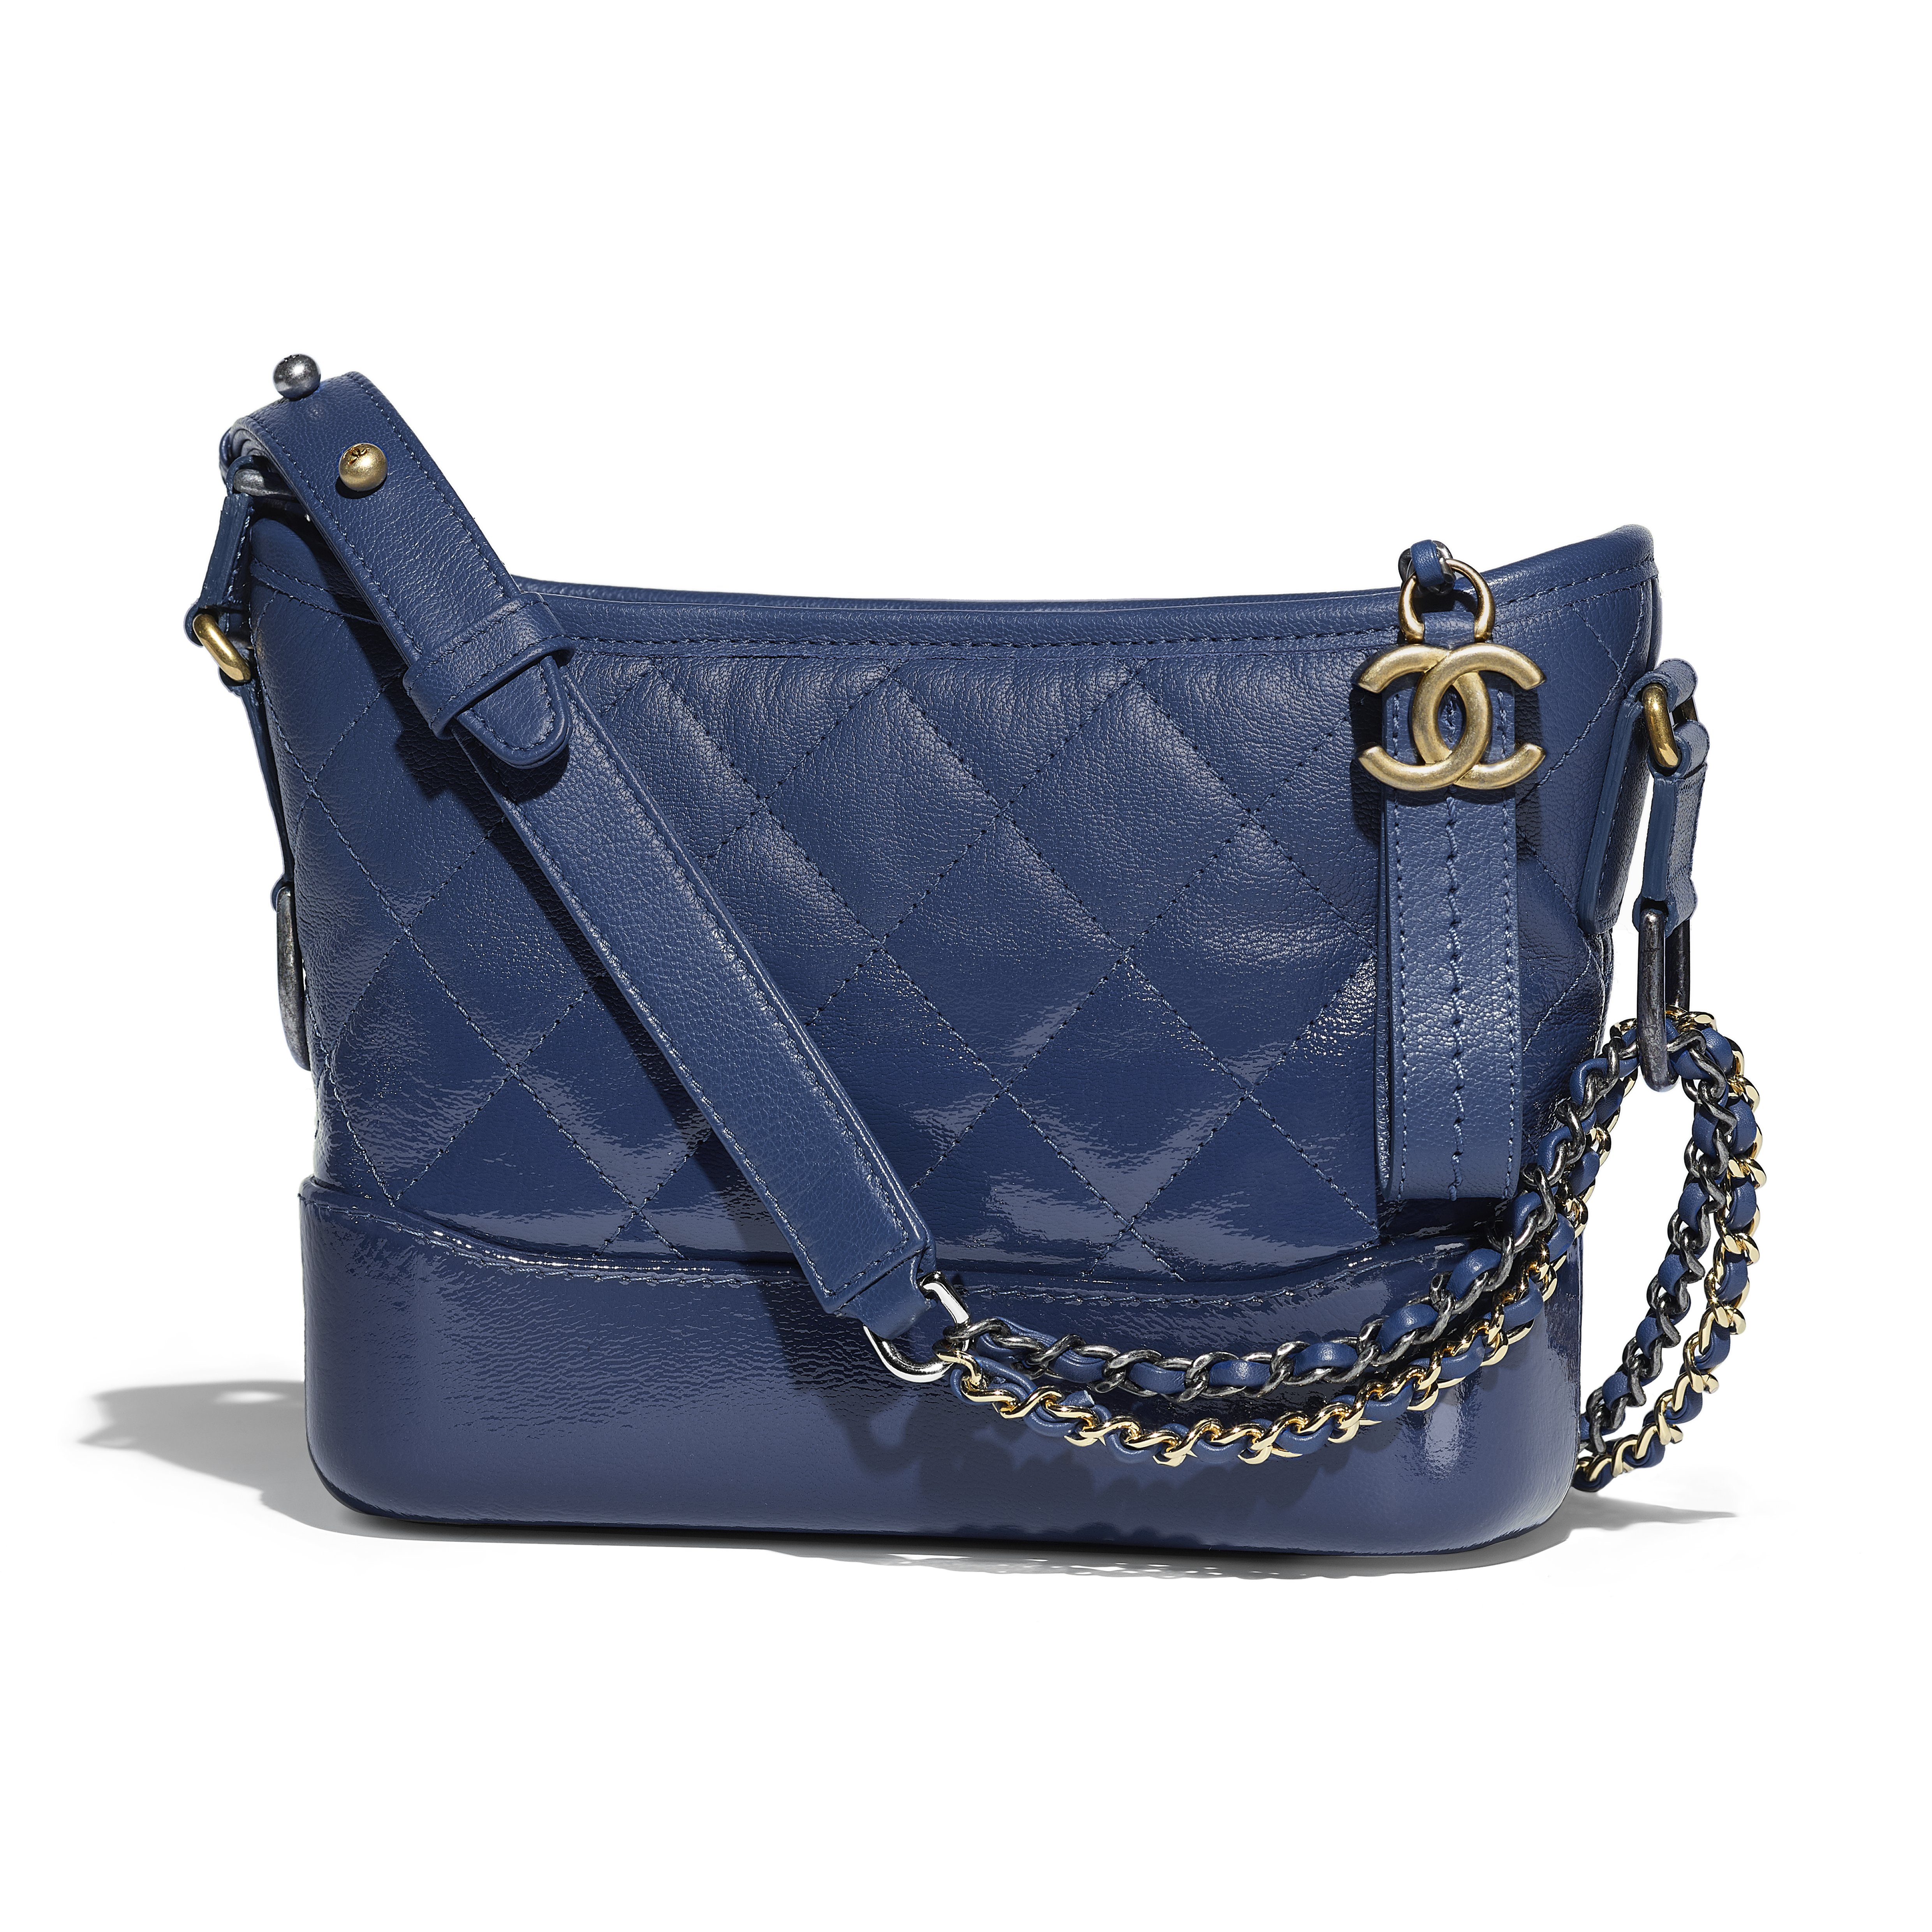 e500d7804660 Chanel Gabrielle Bag Light Blue | Stanford Center for Opportunity ...